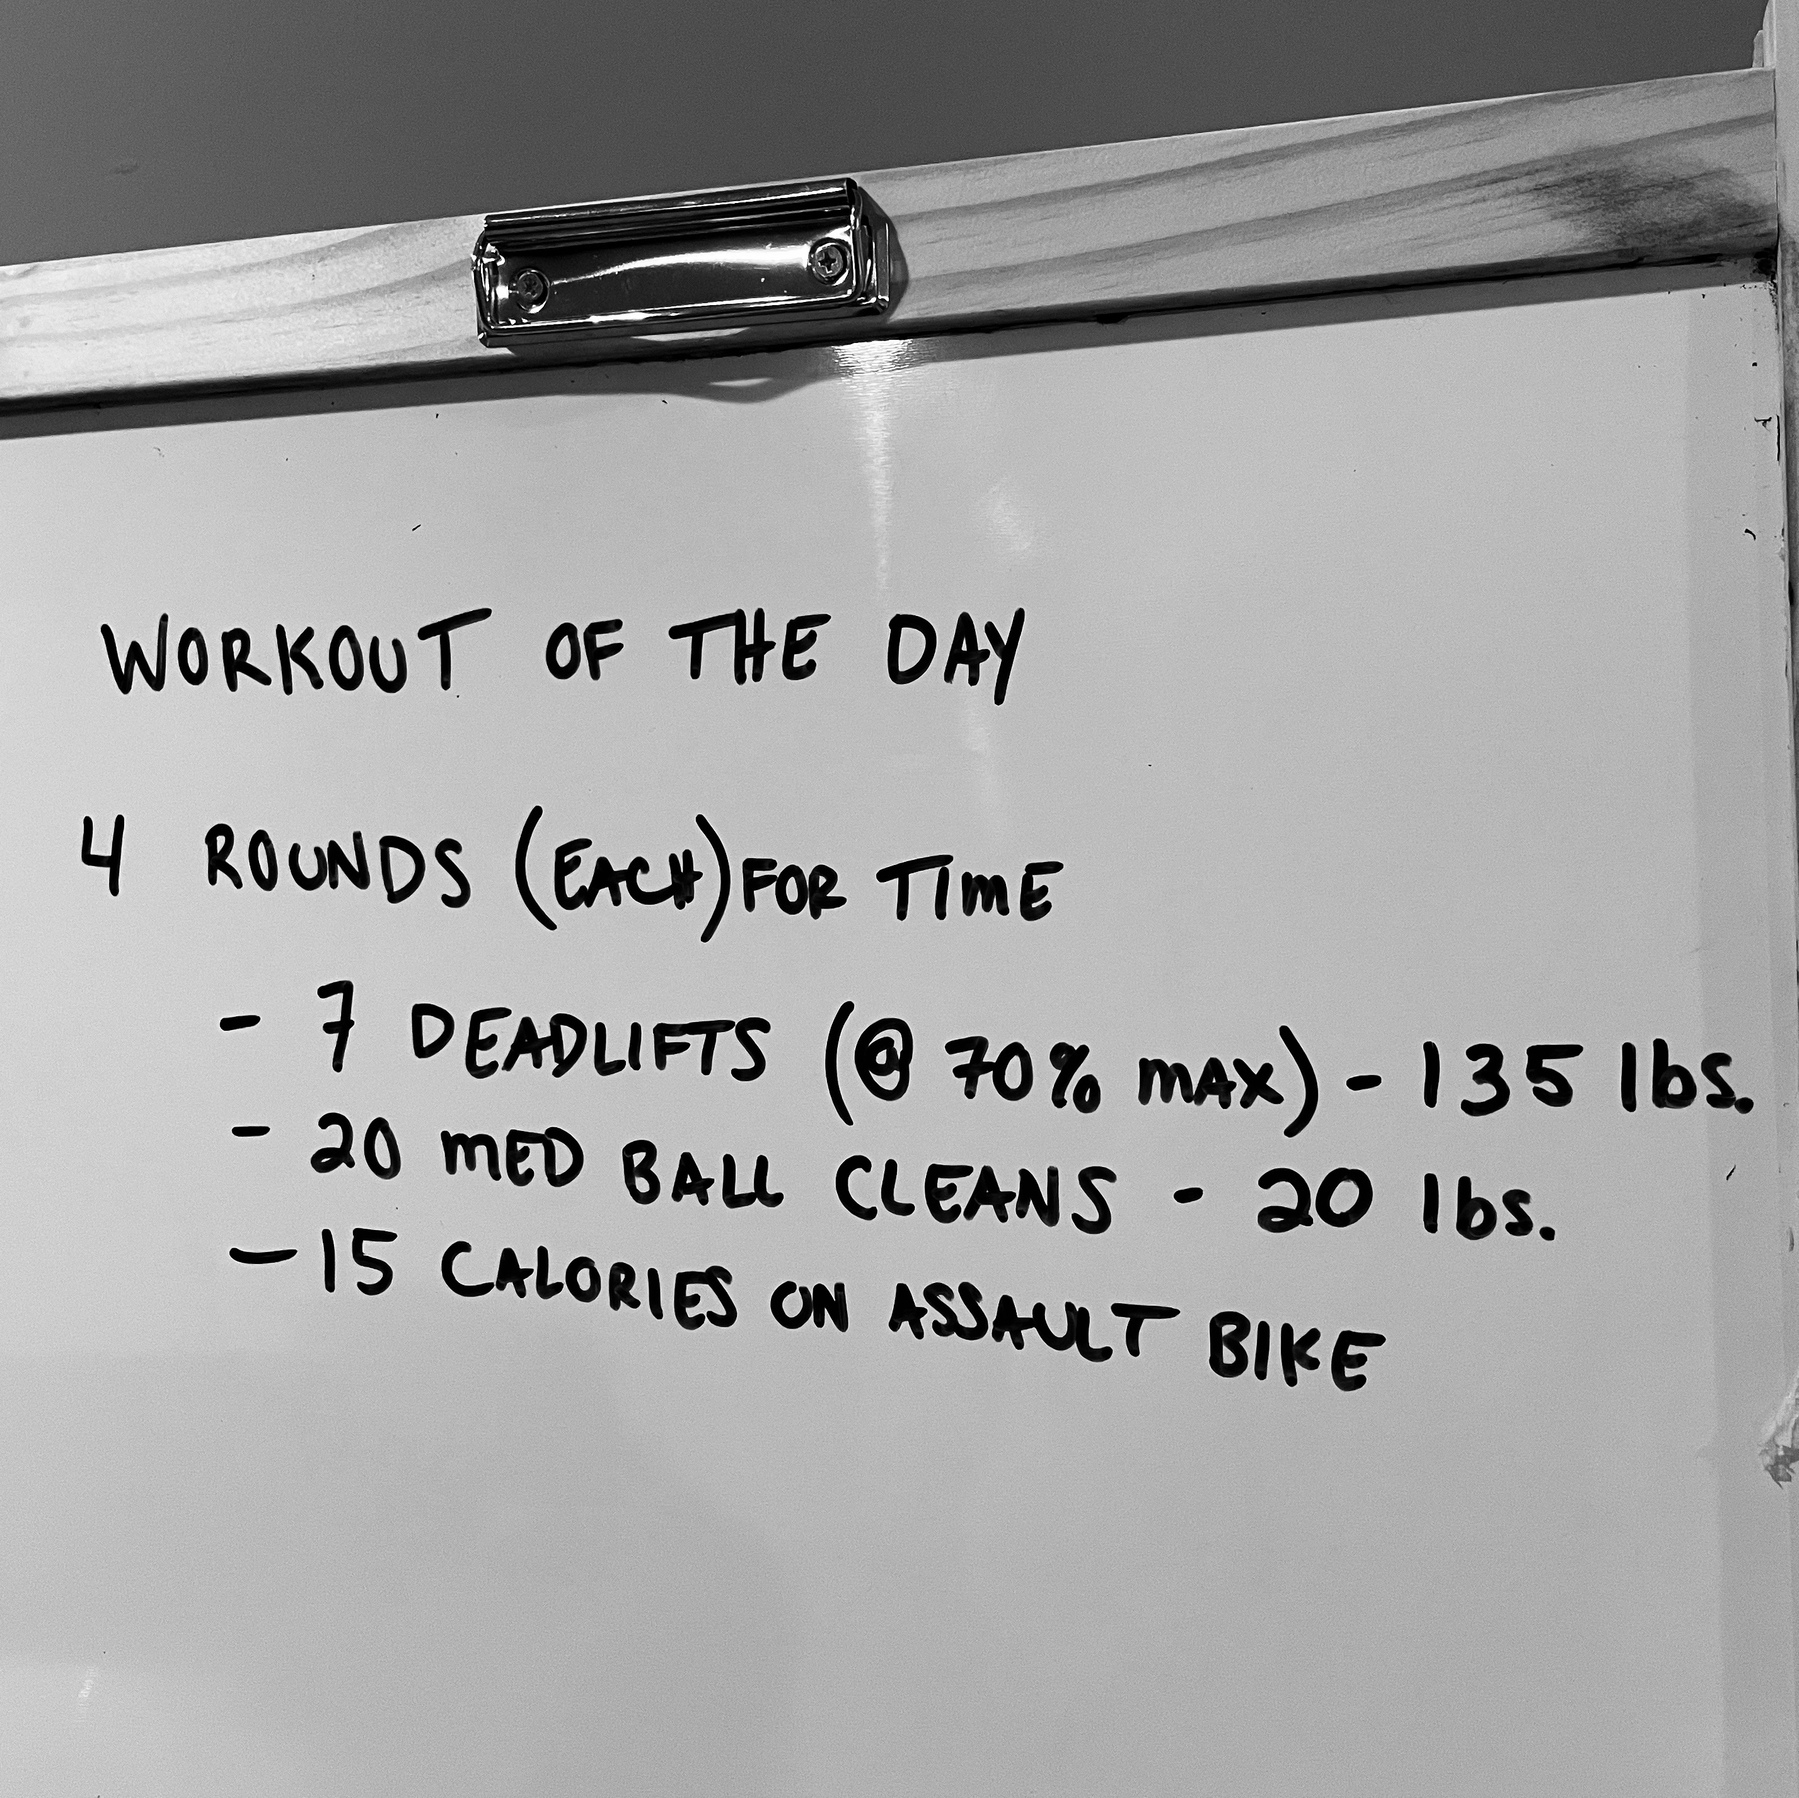 whiteboard with workout written on it